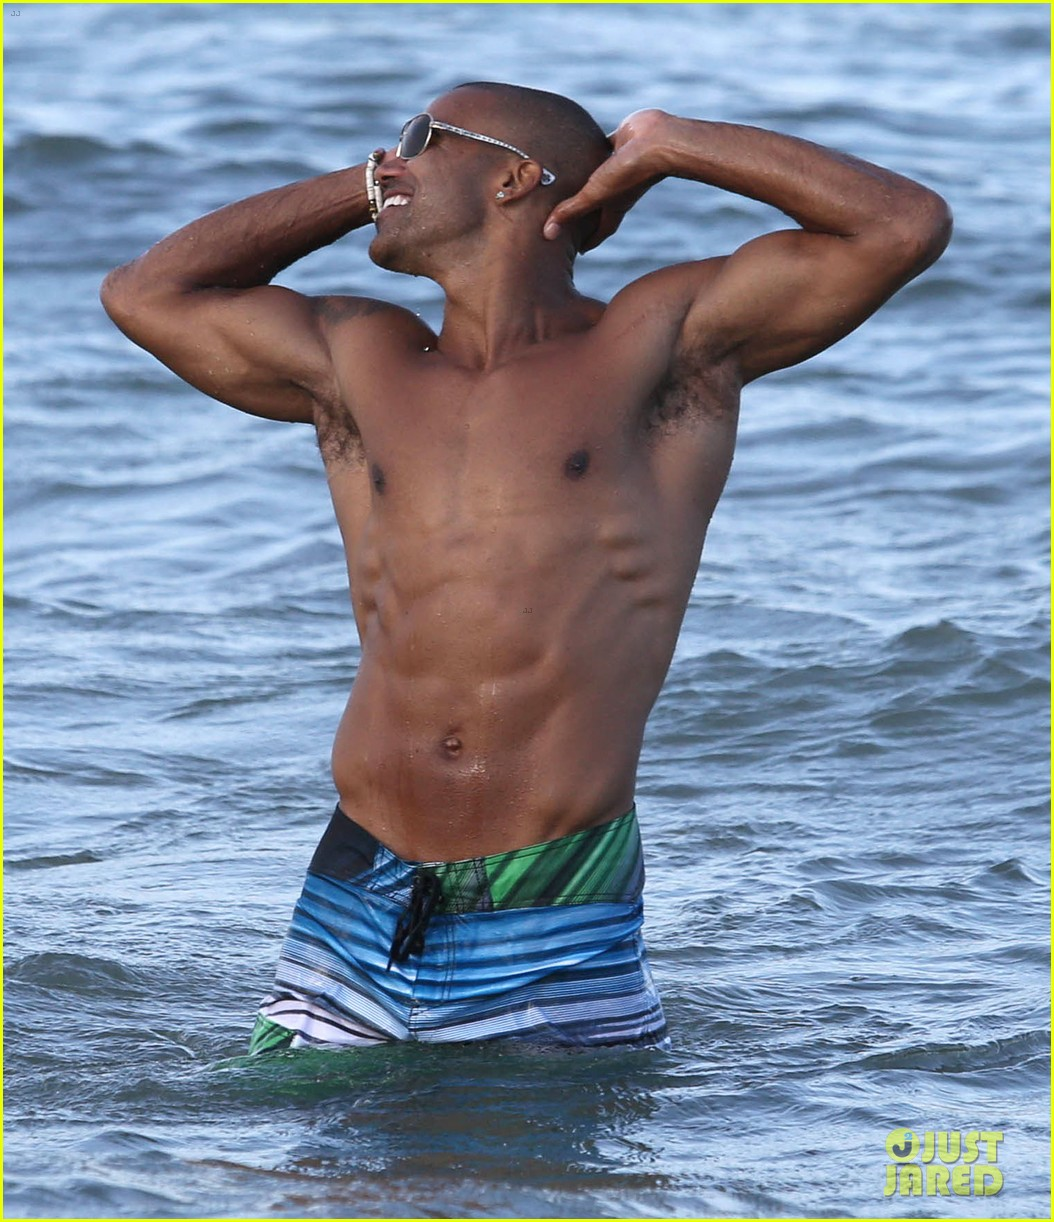 Cock shemale shemar moore gay beach blonde